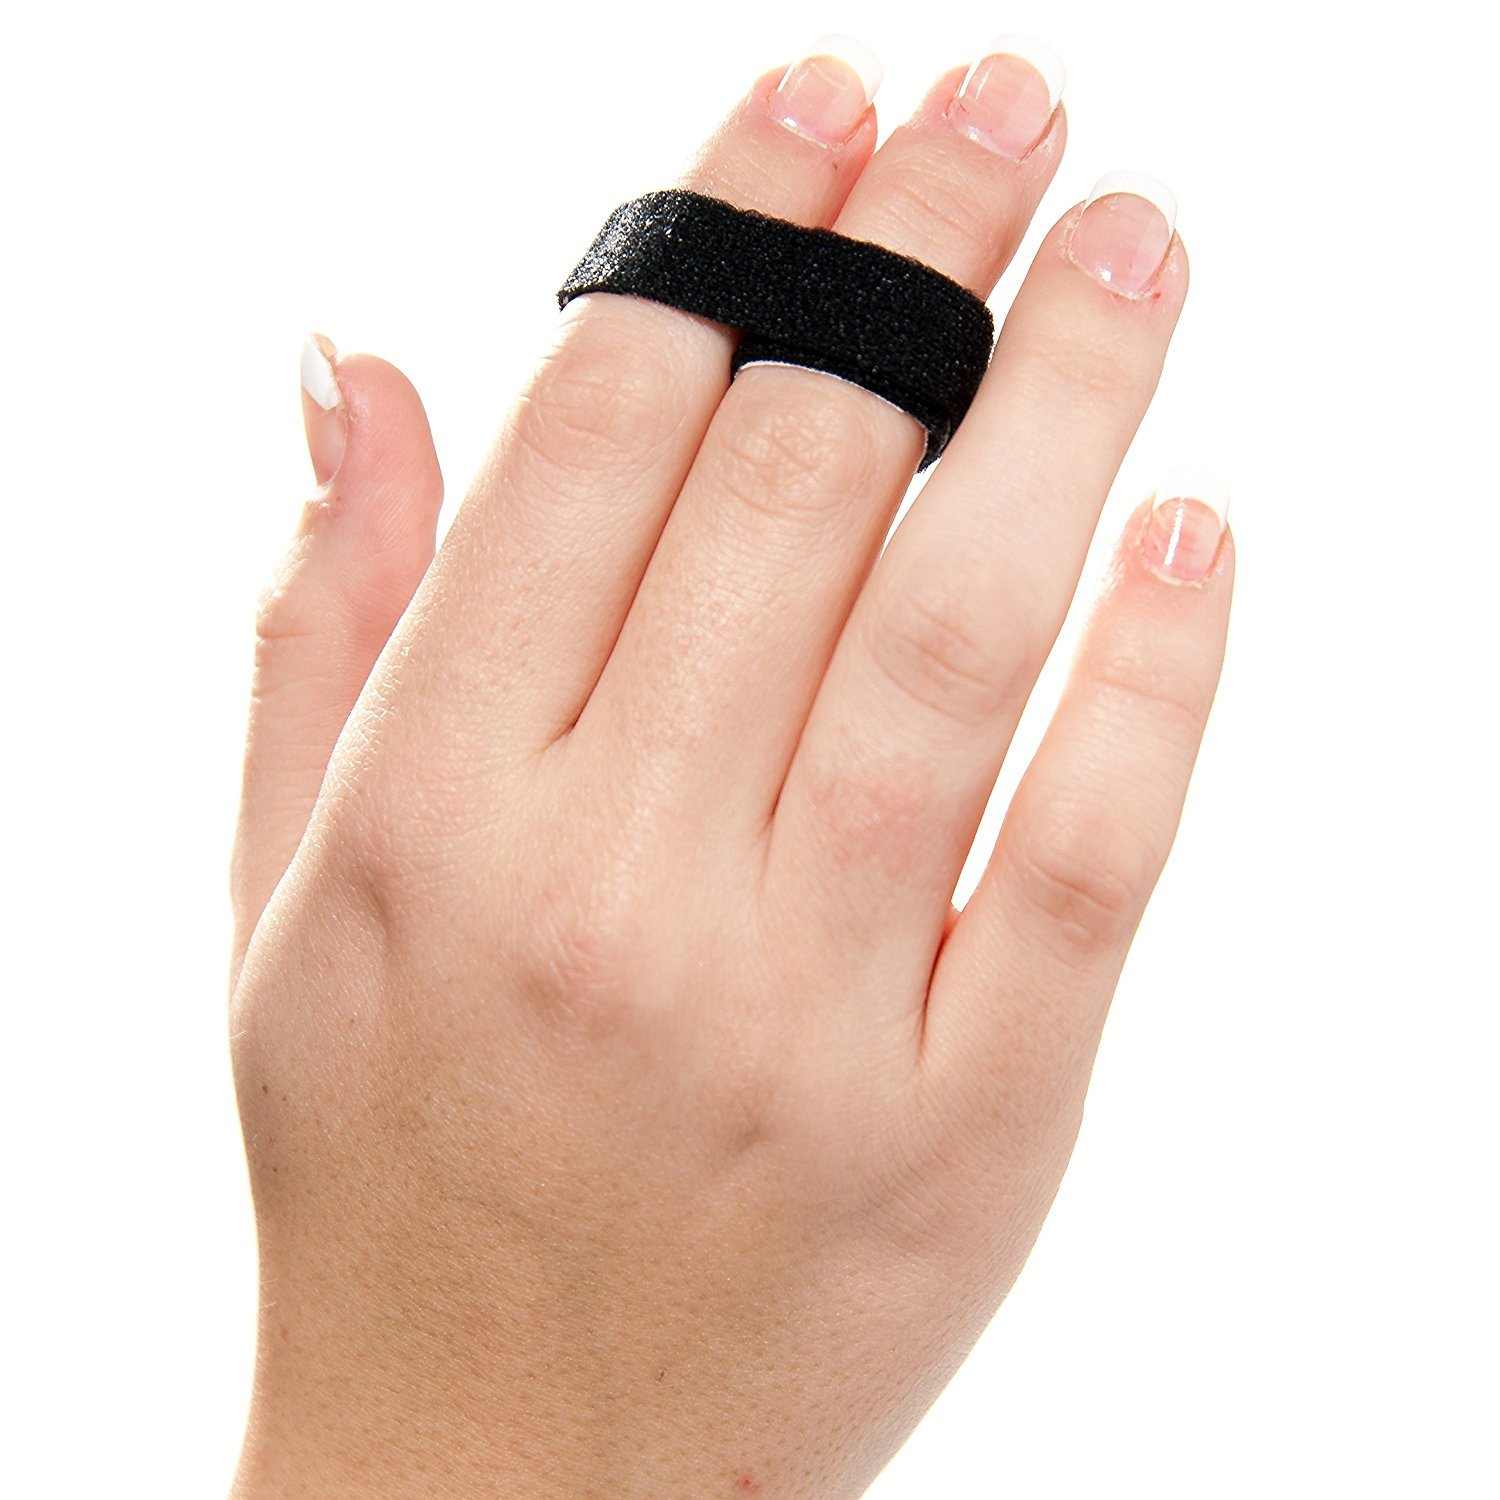 3-Point Products 3pp Buddy Loops for Jammed and Broken Fingers 1/2'', Black (Package of 25) by 3-Point Products